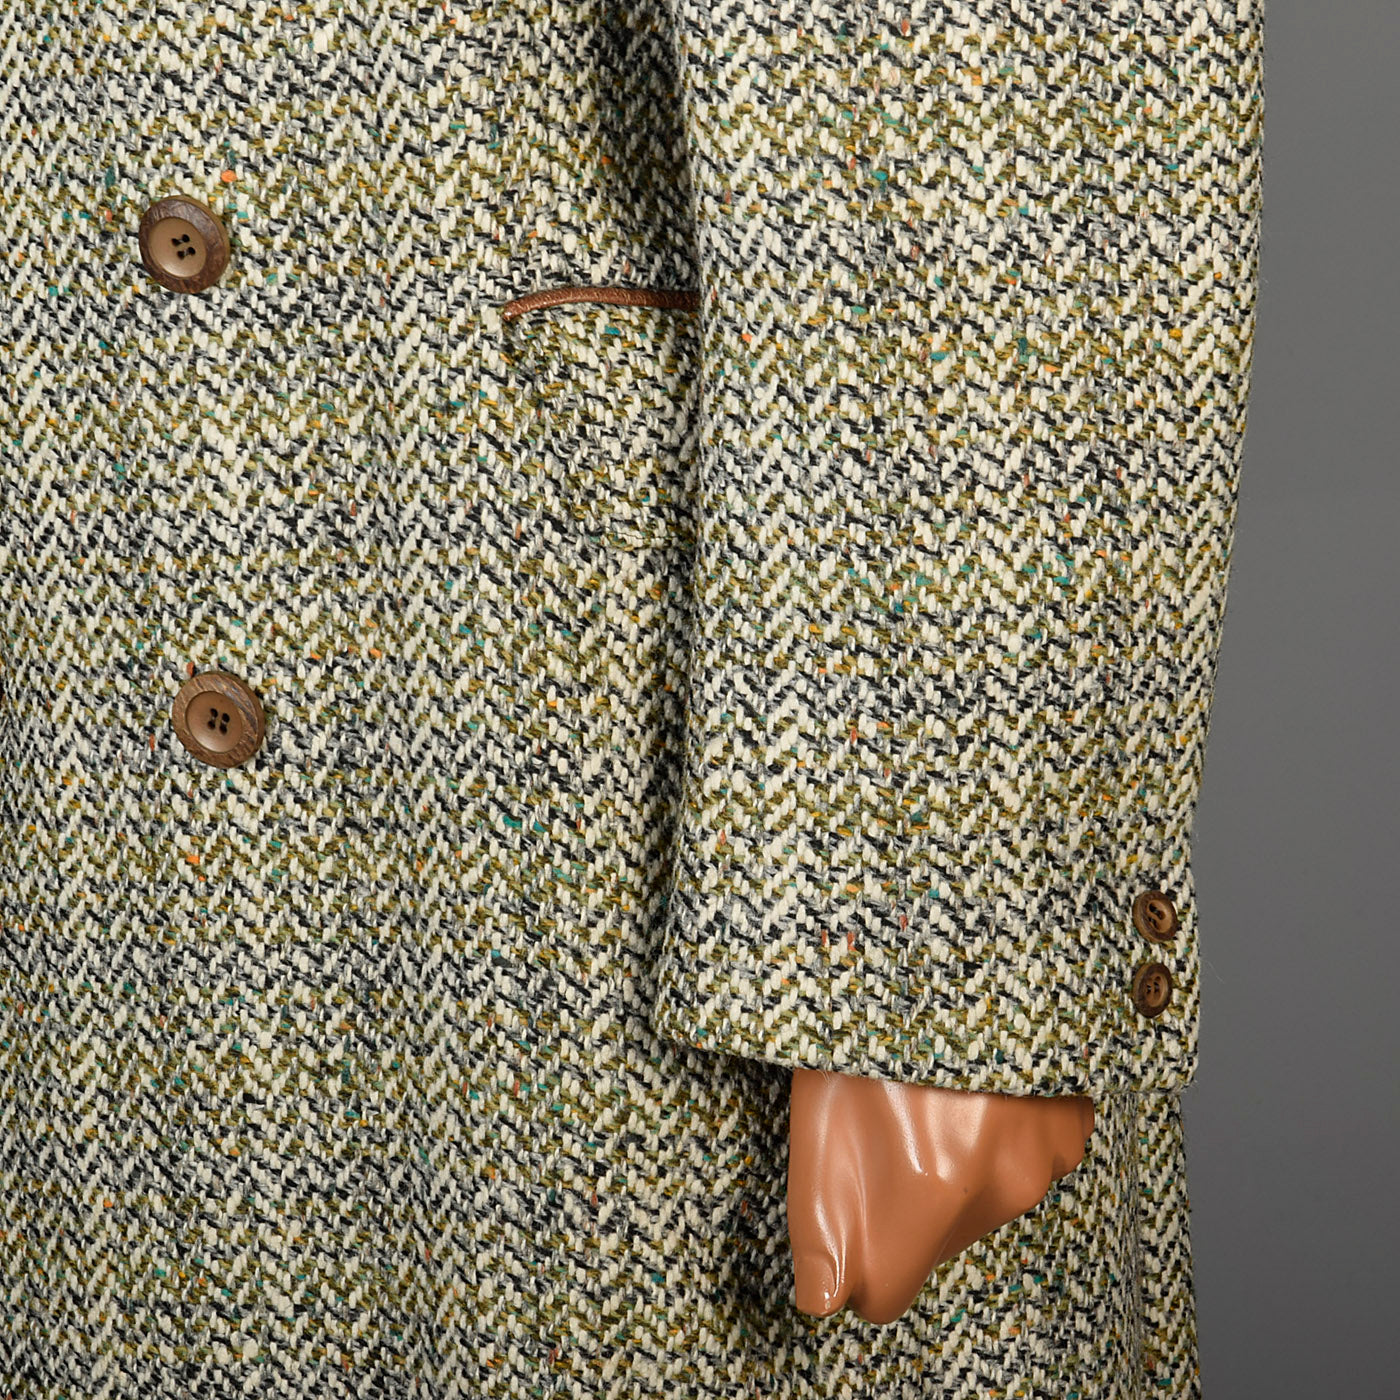 1970s Men's Cortafiel Tweed Overcoat, Double Breasted with a Belted Back